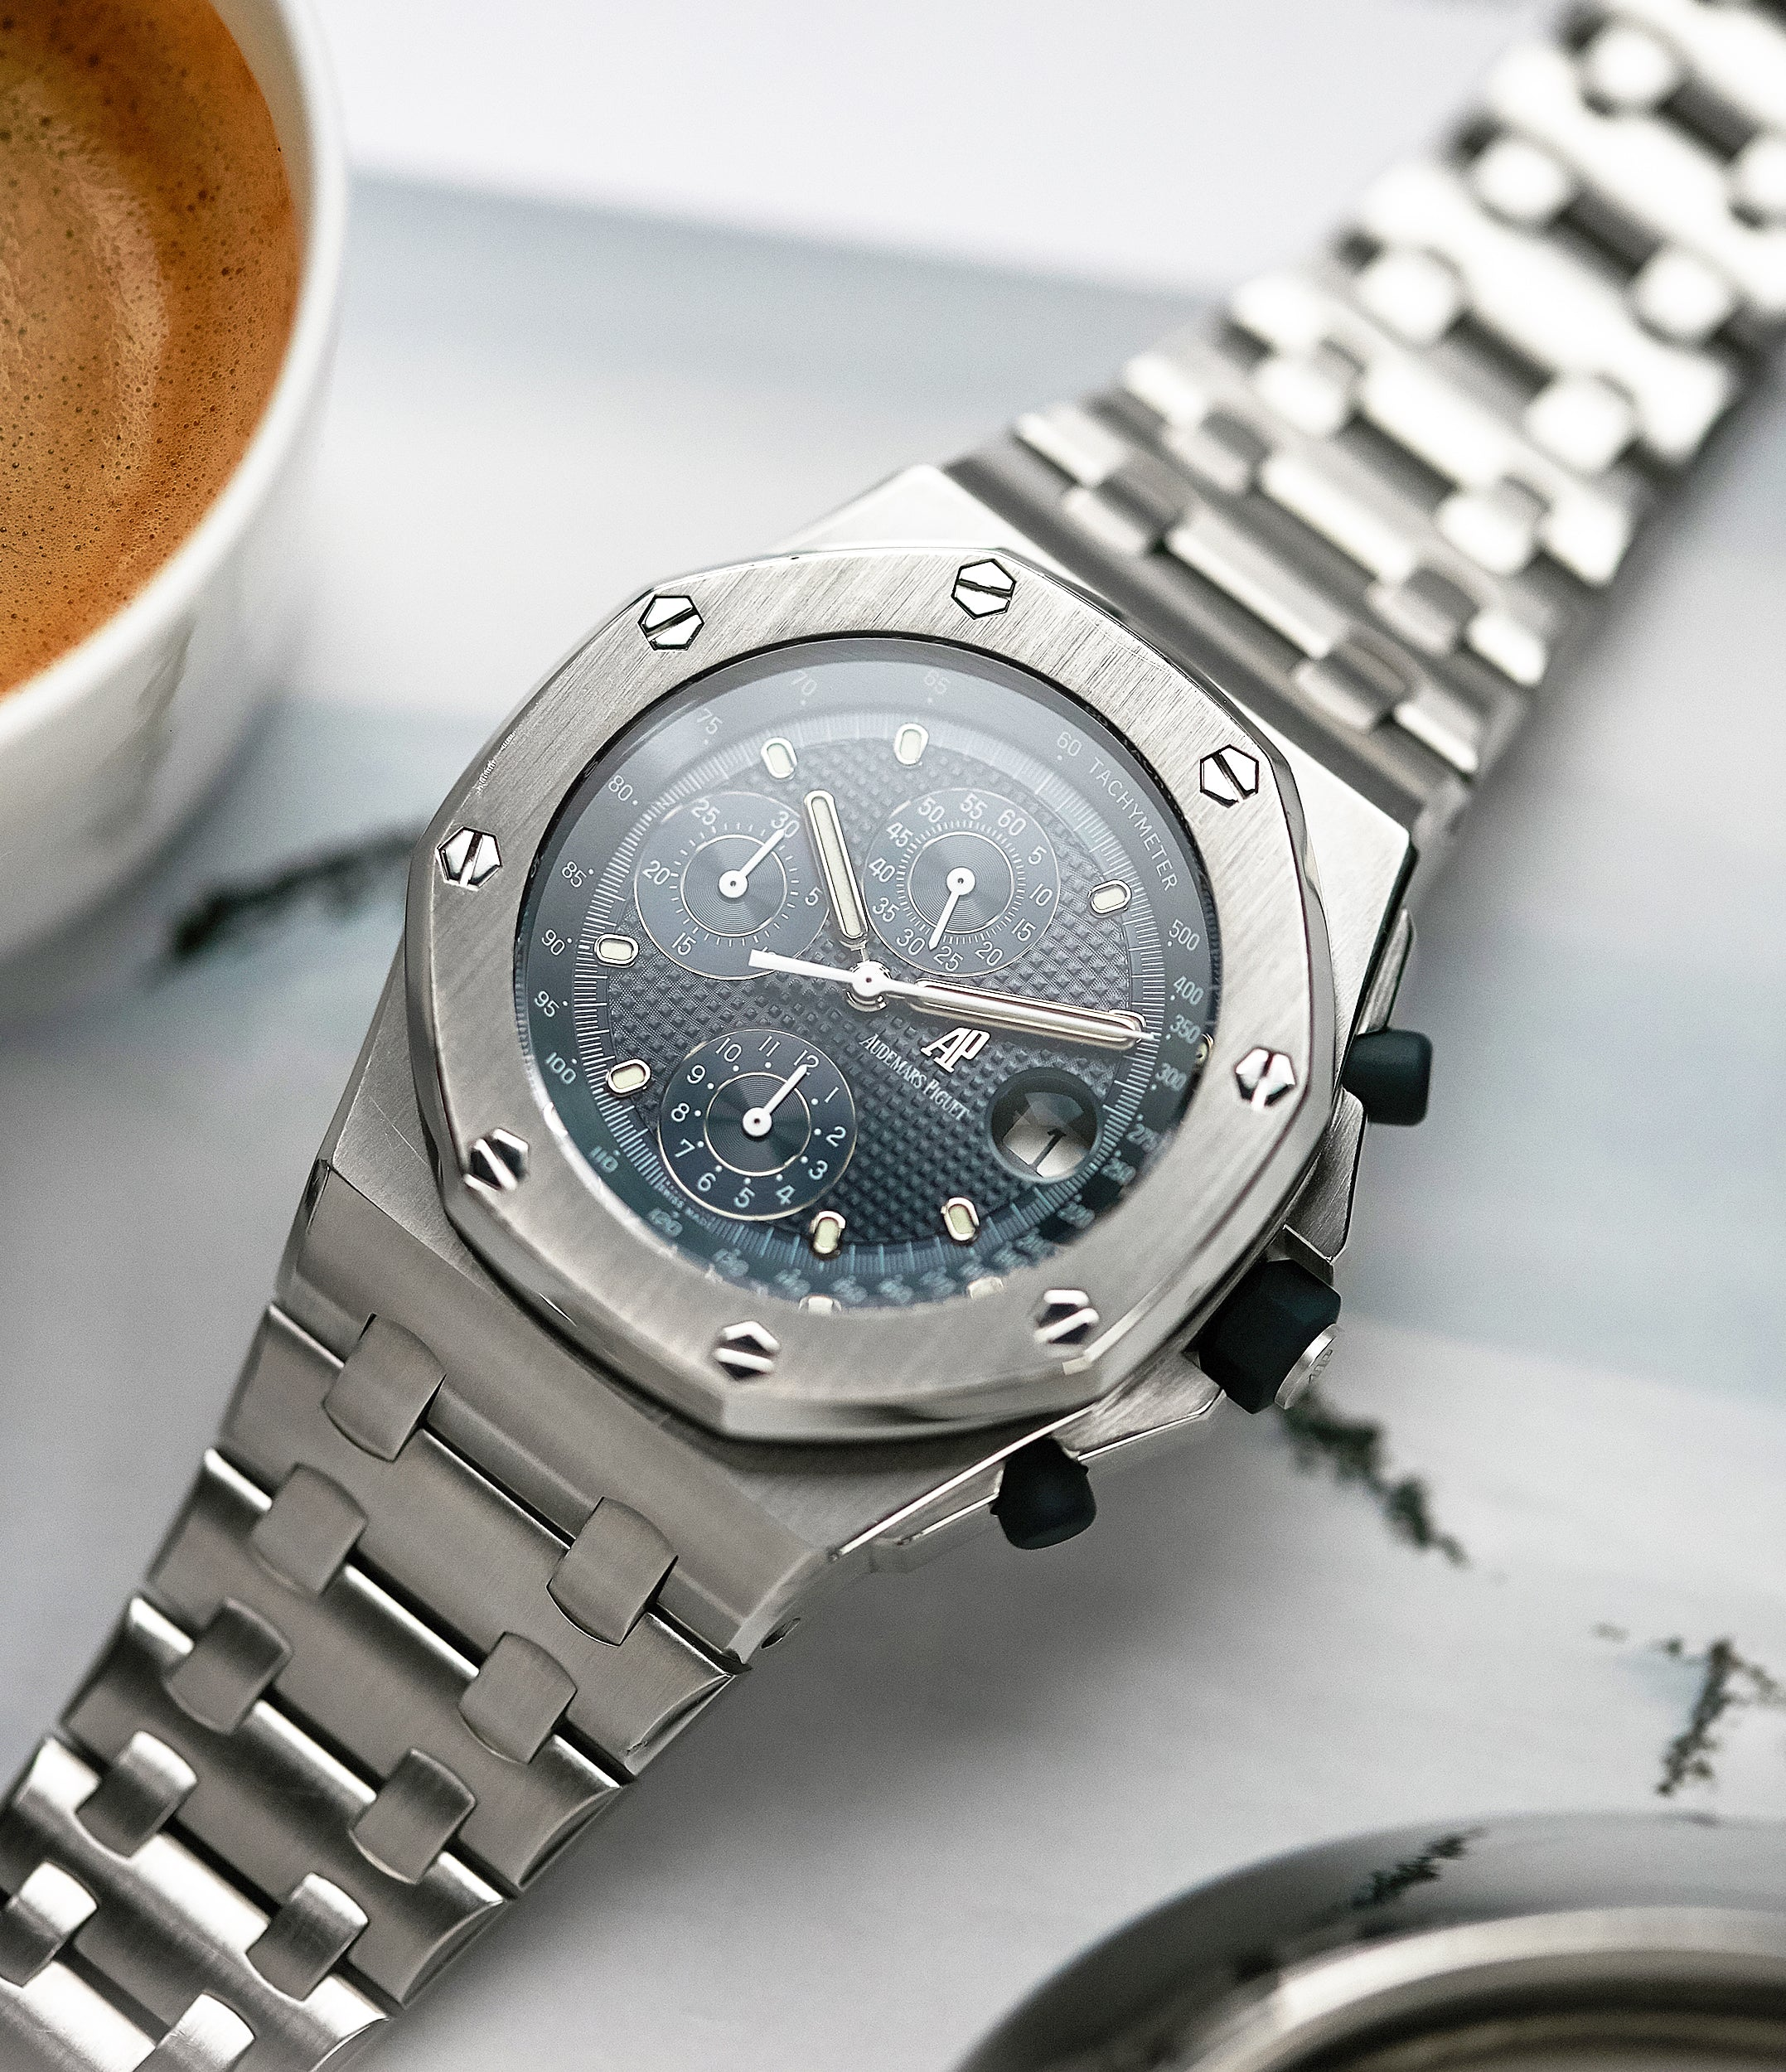 shop pre-owned Audemars Piguet Royal Oak Offshore 'The Beast' 25721 steel vintage chronograph watch for sale online A Collected Man London UK specialist of rare watches